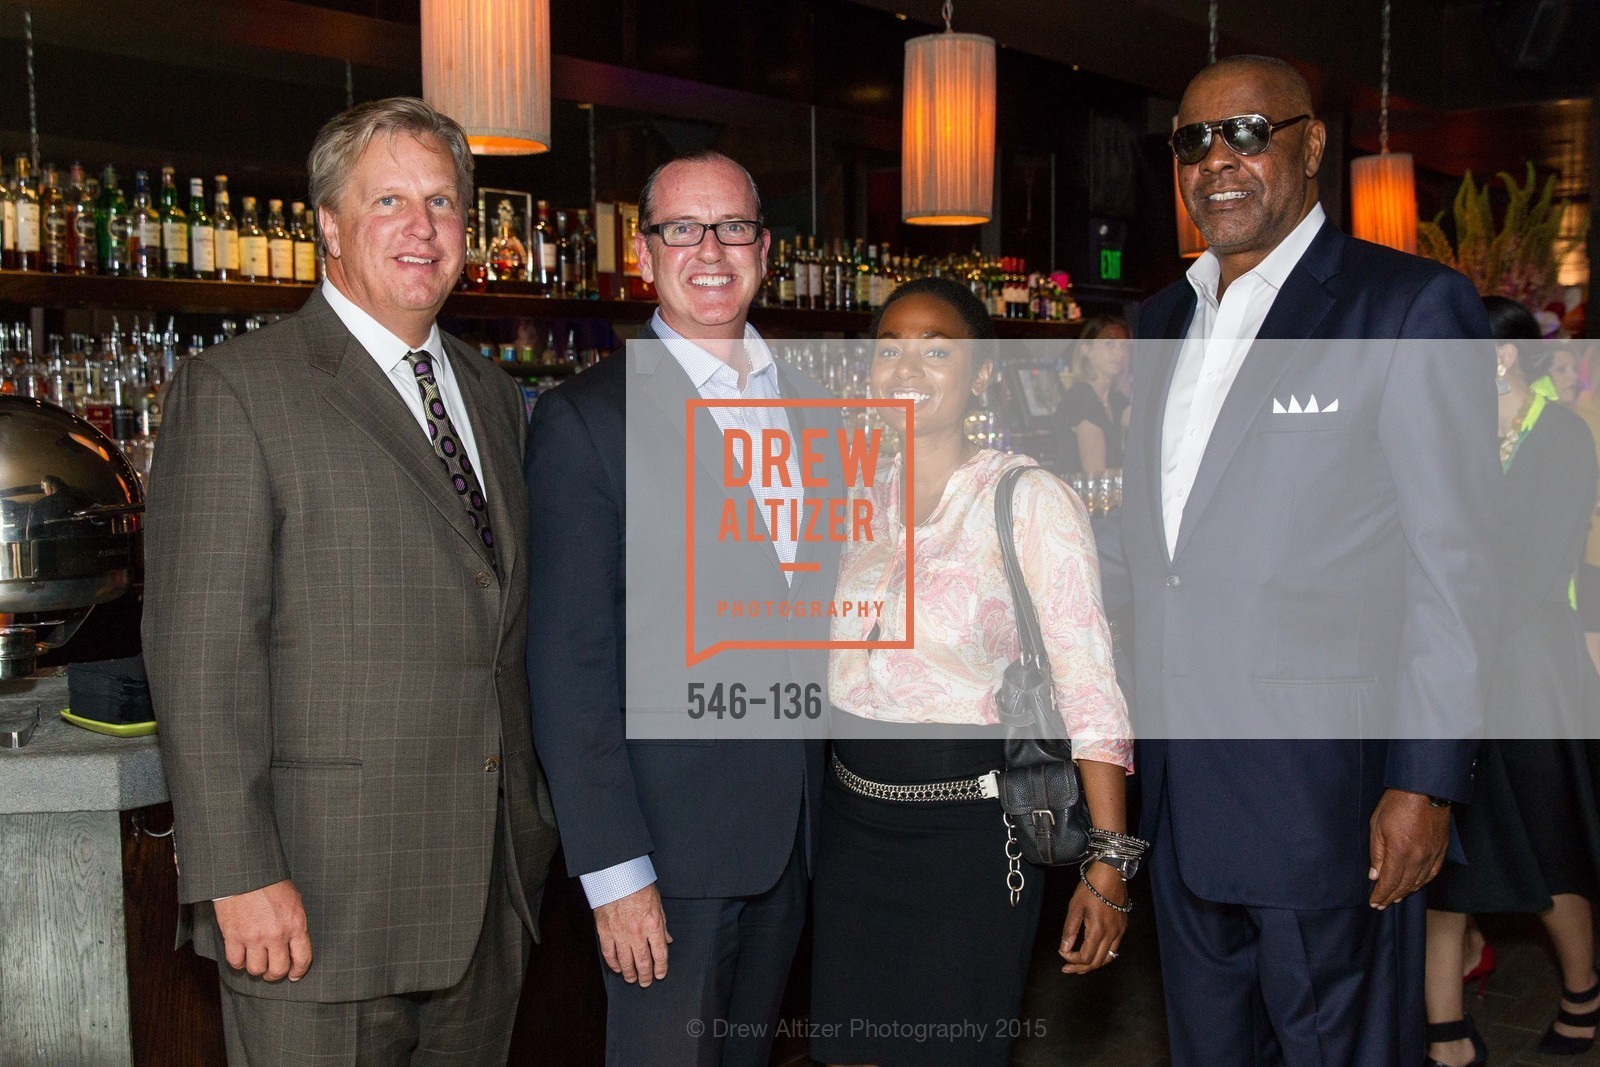 Michael Mohrrman, Joseph Deery, Keysha Bailey, Michael Baines,  Inspired Luxe Launch Party hosted by Denise Bradley-Tyson, MatrixFillmore, May 27th, 2015,Drew Altizer, Drew Altizer Photography, full-service event agency, private events, San Francisco photographer, photographer California